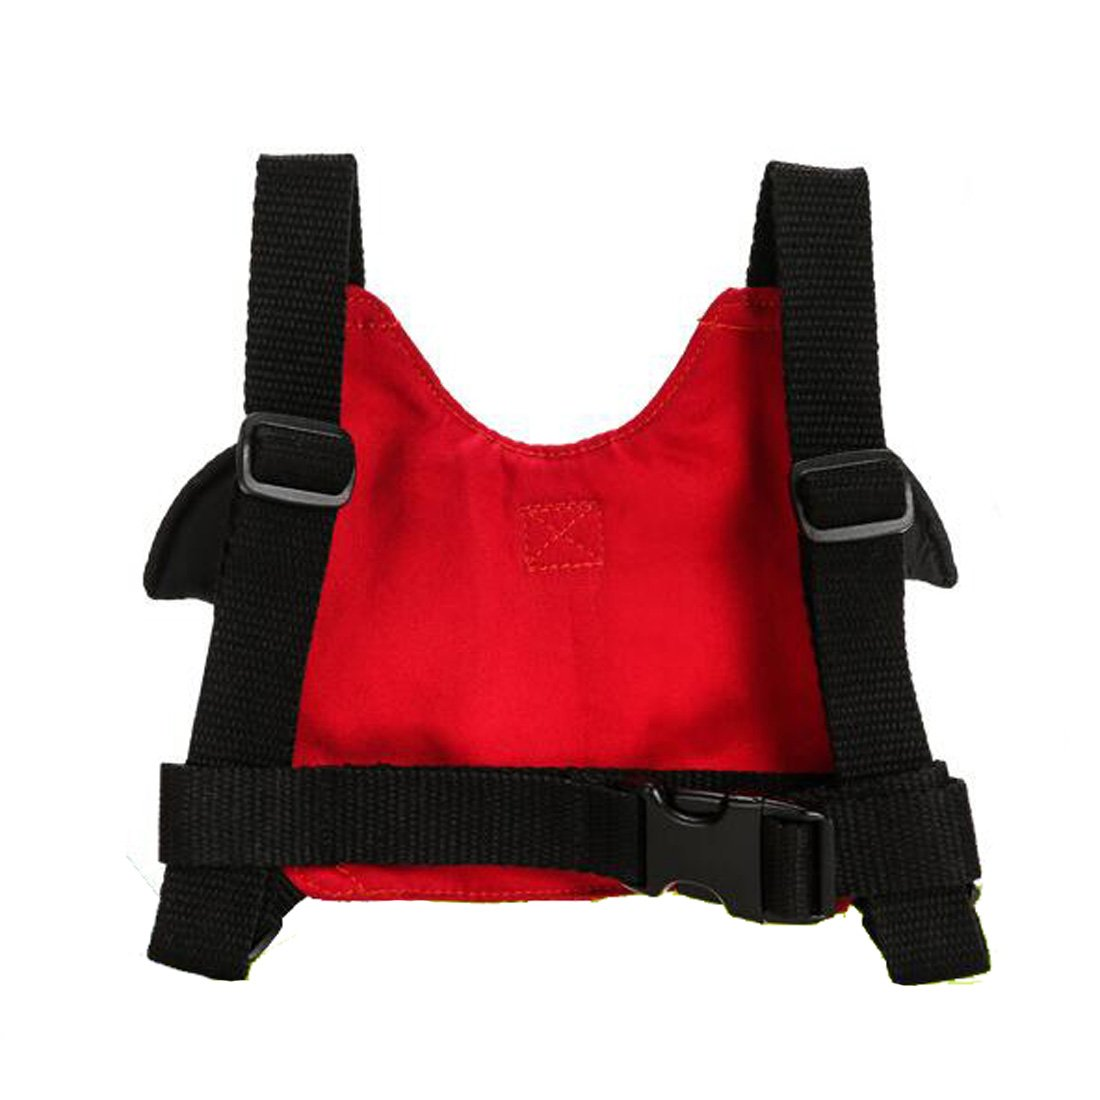 EPLAZA Toddler Walking Safety Bat Belt Harness with Leash Breathable (cotton red) by EPLAZA (Image #2)